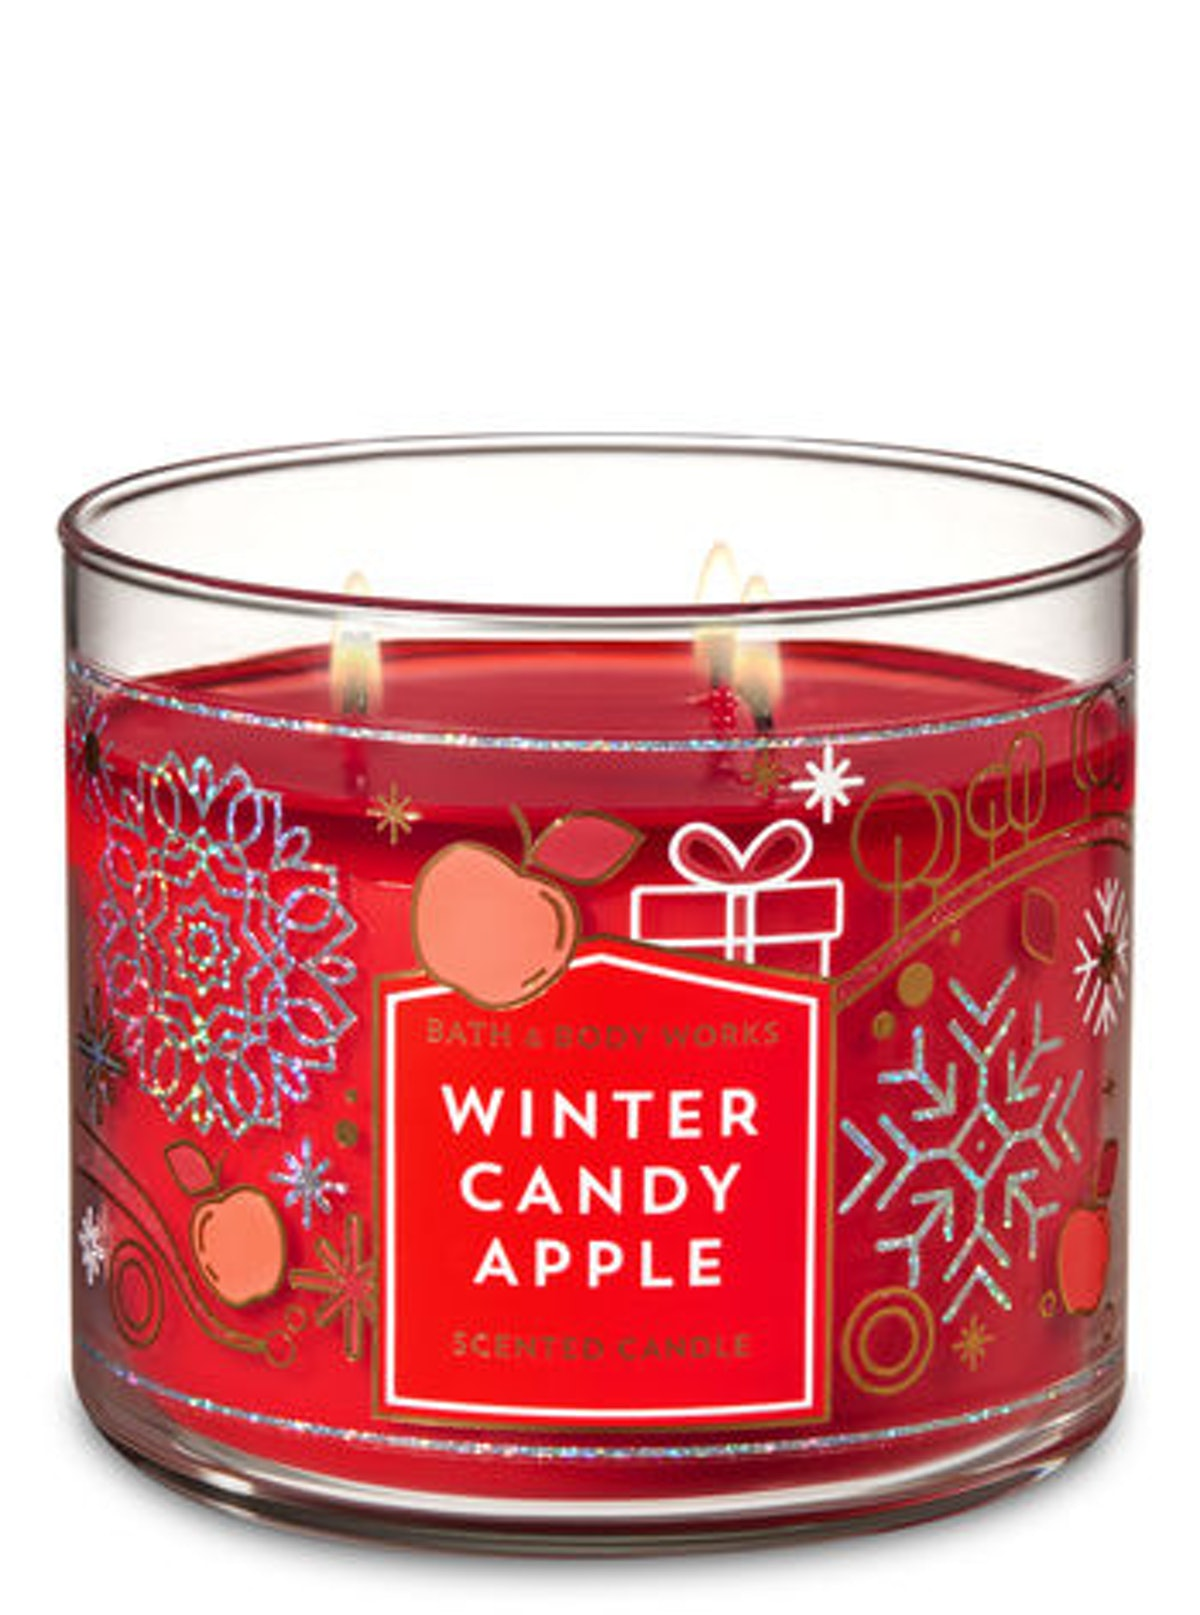 WINTER CANDY APPLE 3-Wick Candle